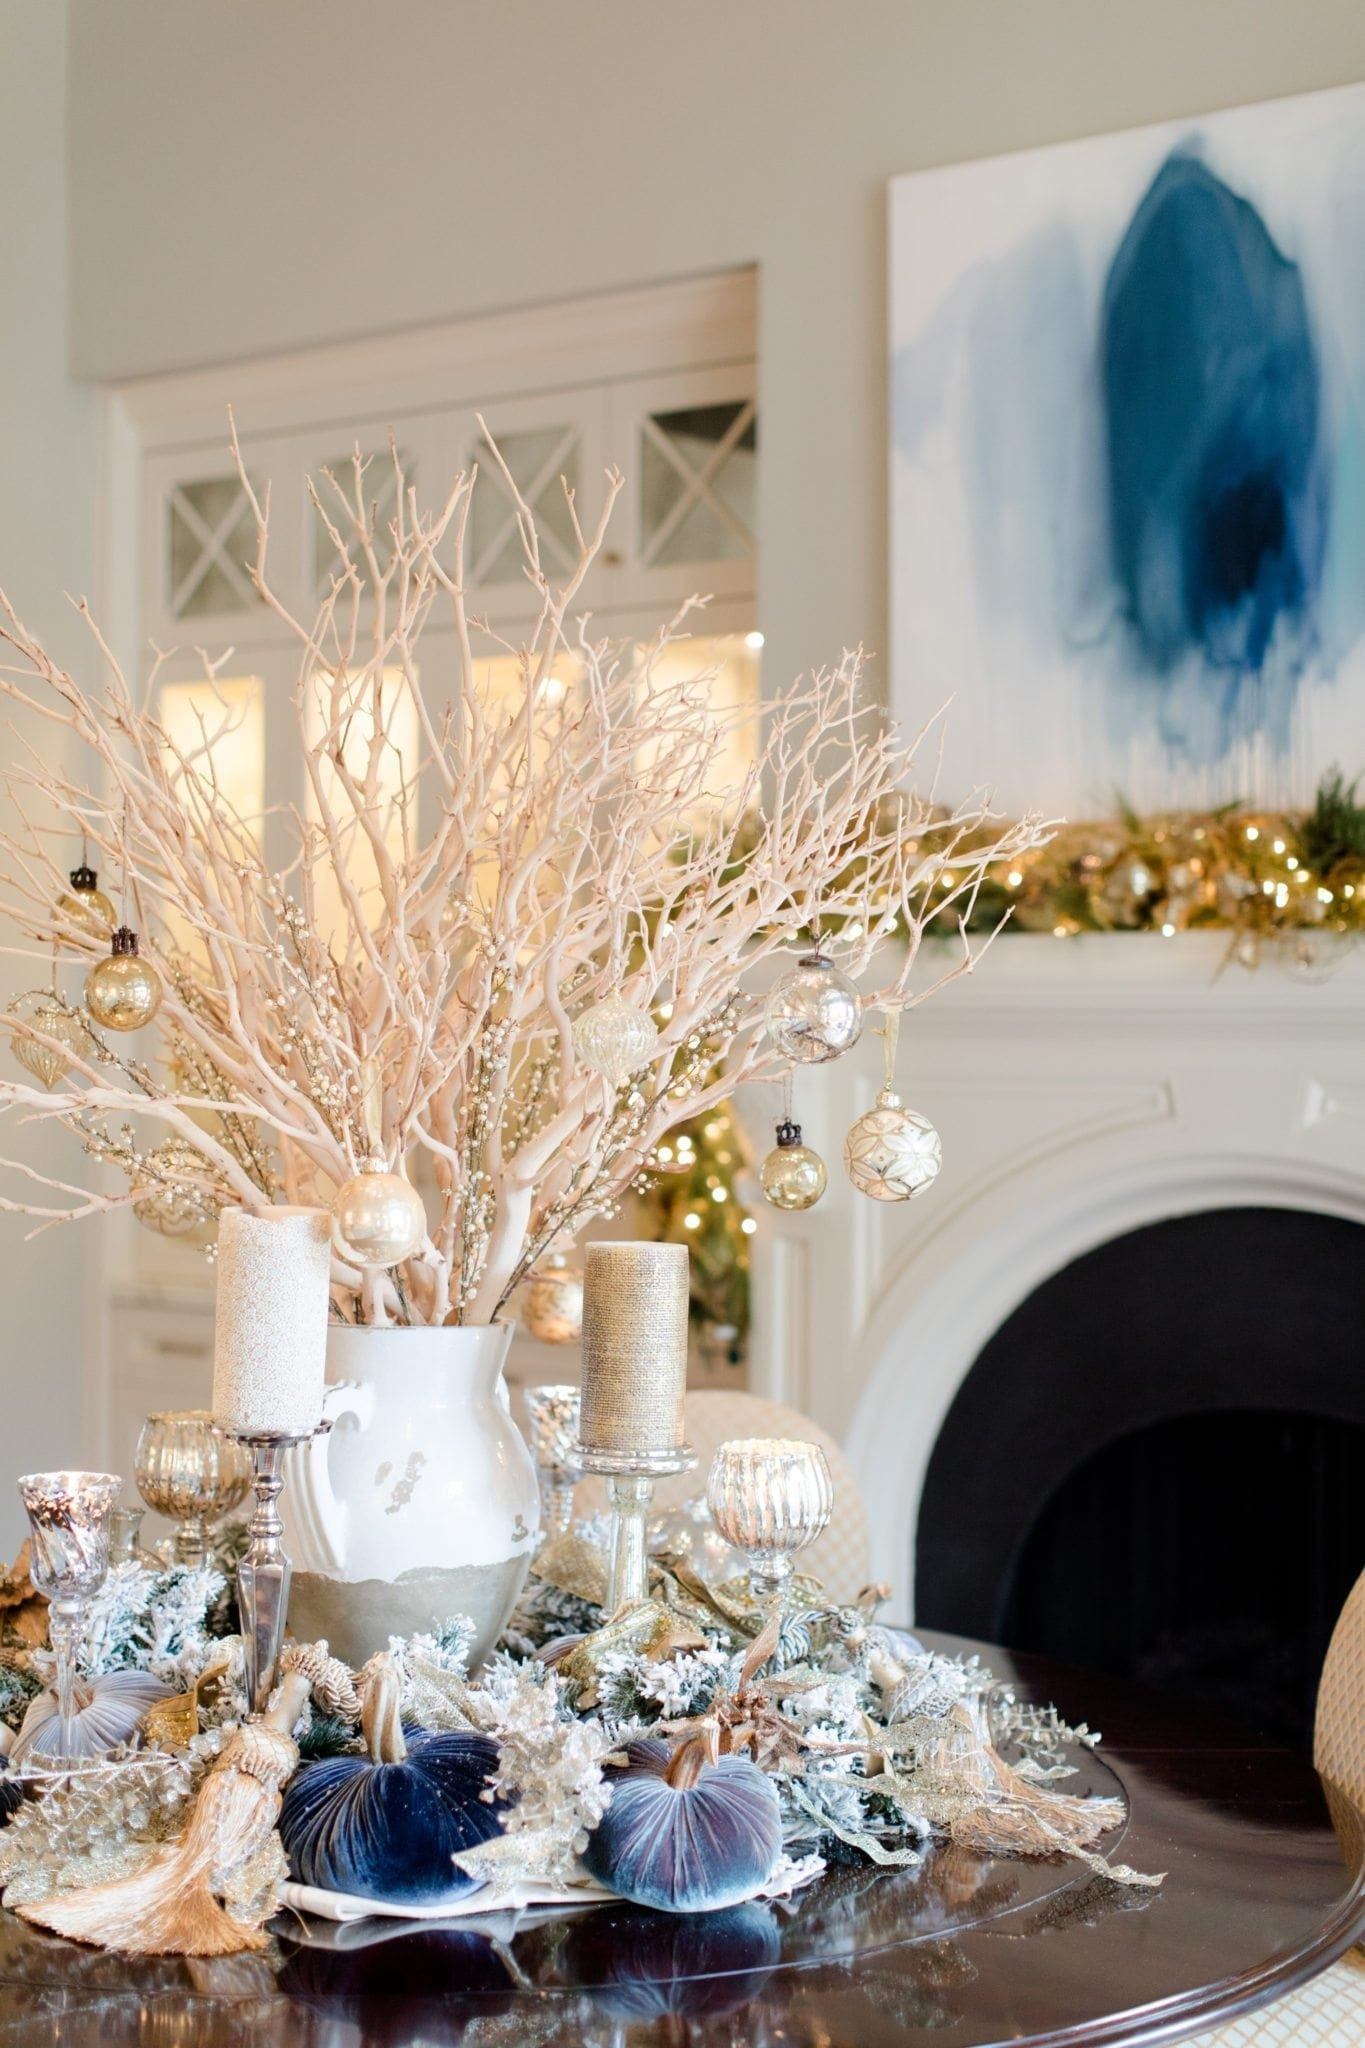 Christmas centerpiece idea. Manzanita branch centerpiece with ornaments hanging from them on a round dinner table.